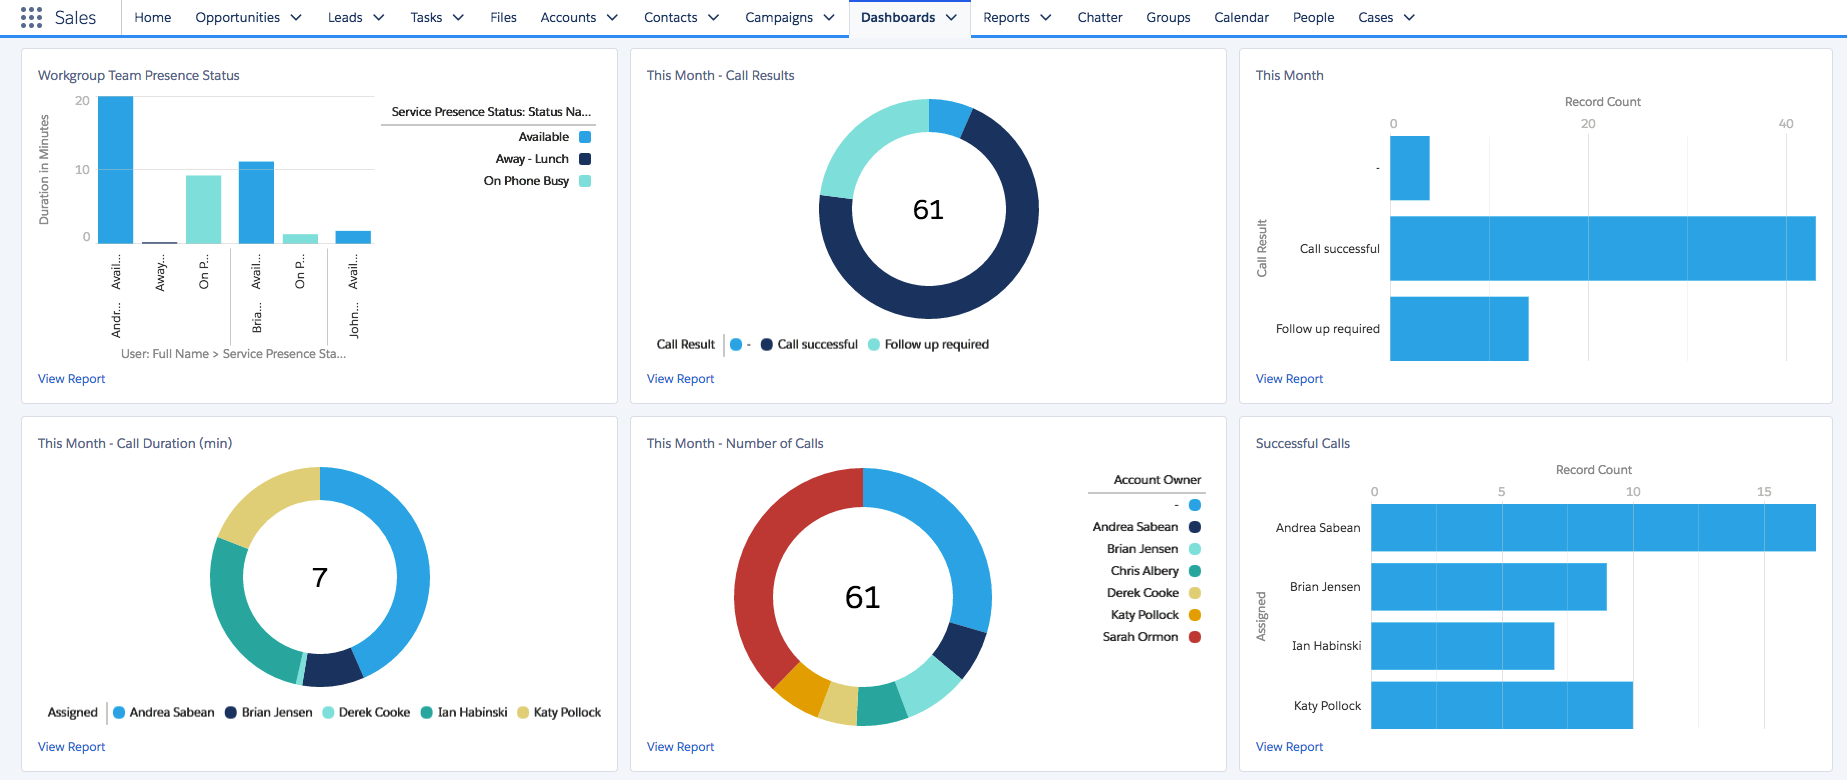 Customizable, out-of-the-box reports for tracking performance and service levels.